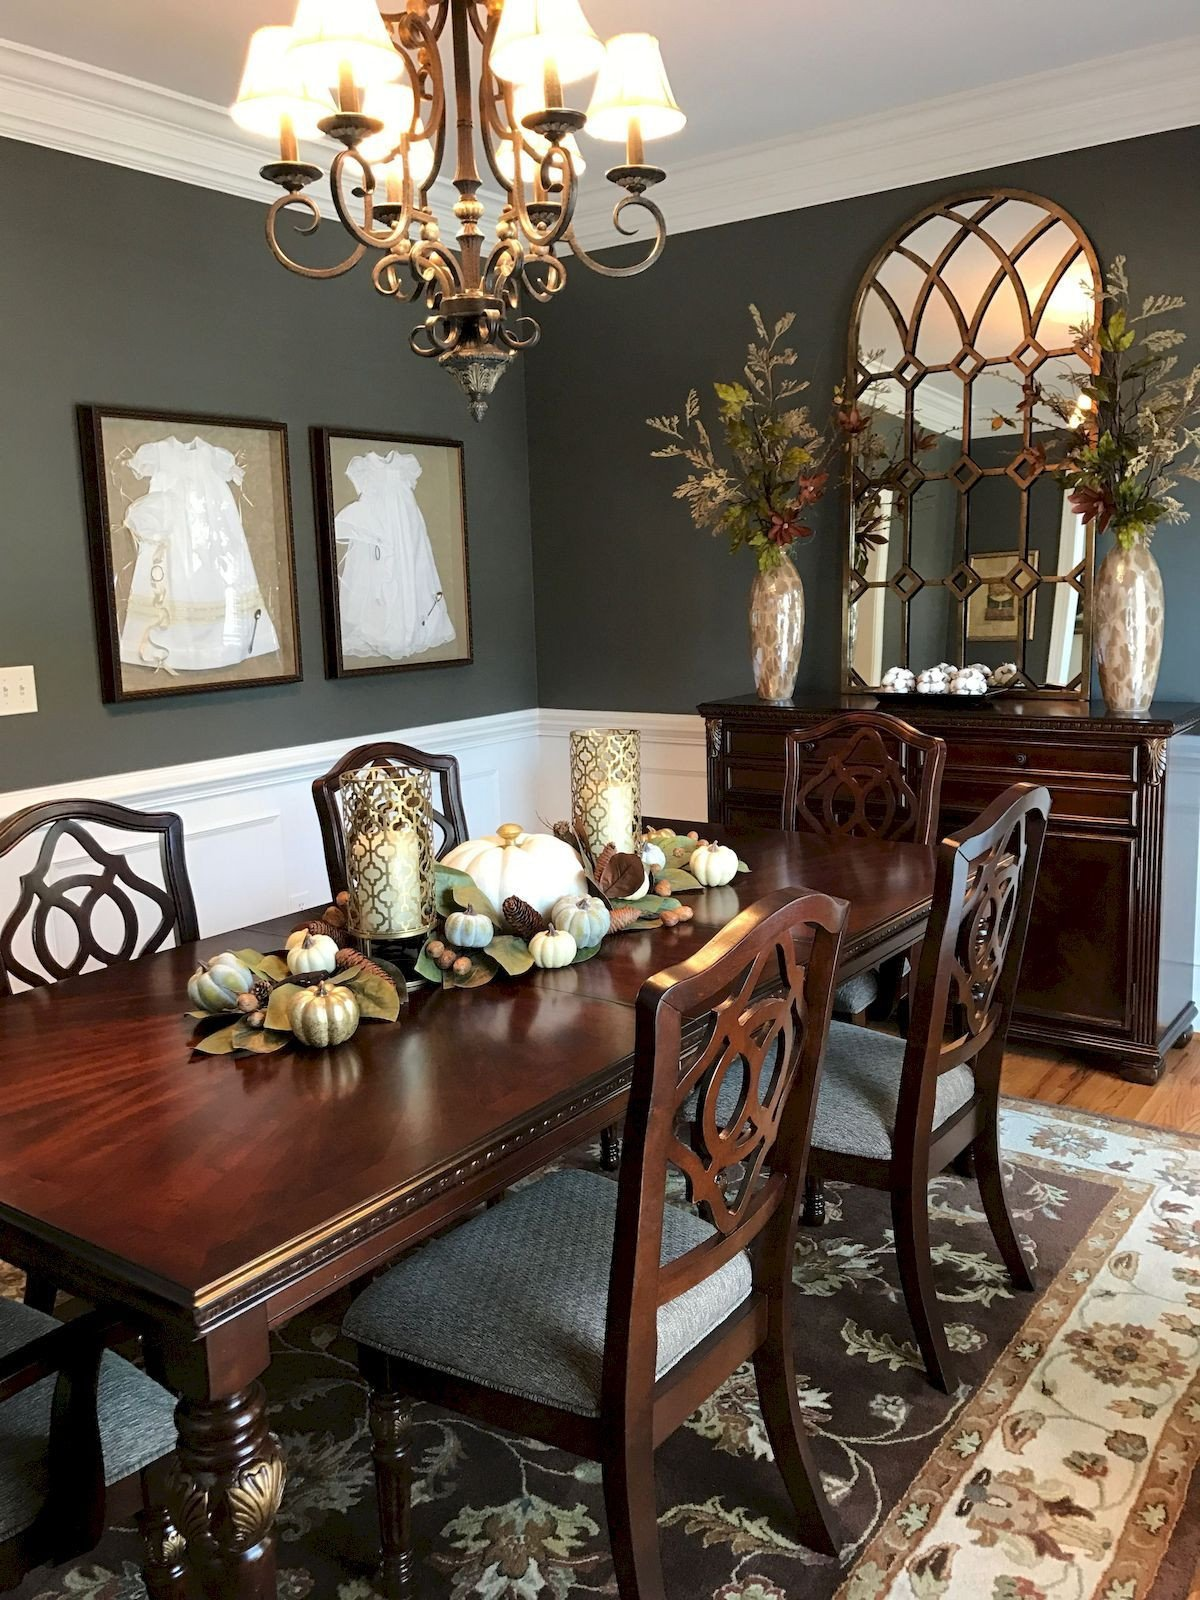 Formal Dining Room Wall Decor Unique 160 Awesome formal Design Ideas for Your Dining Room Kitchen & Dining In 2019